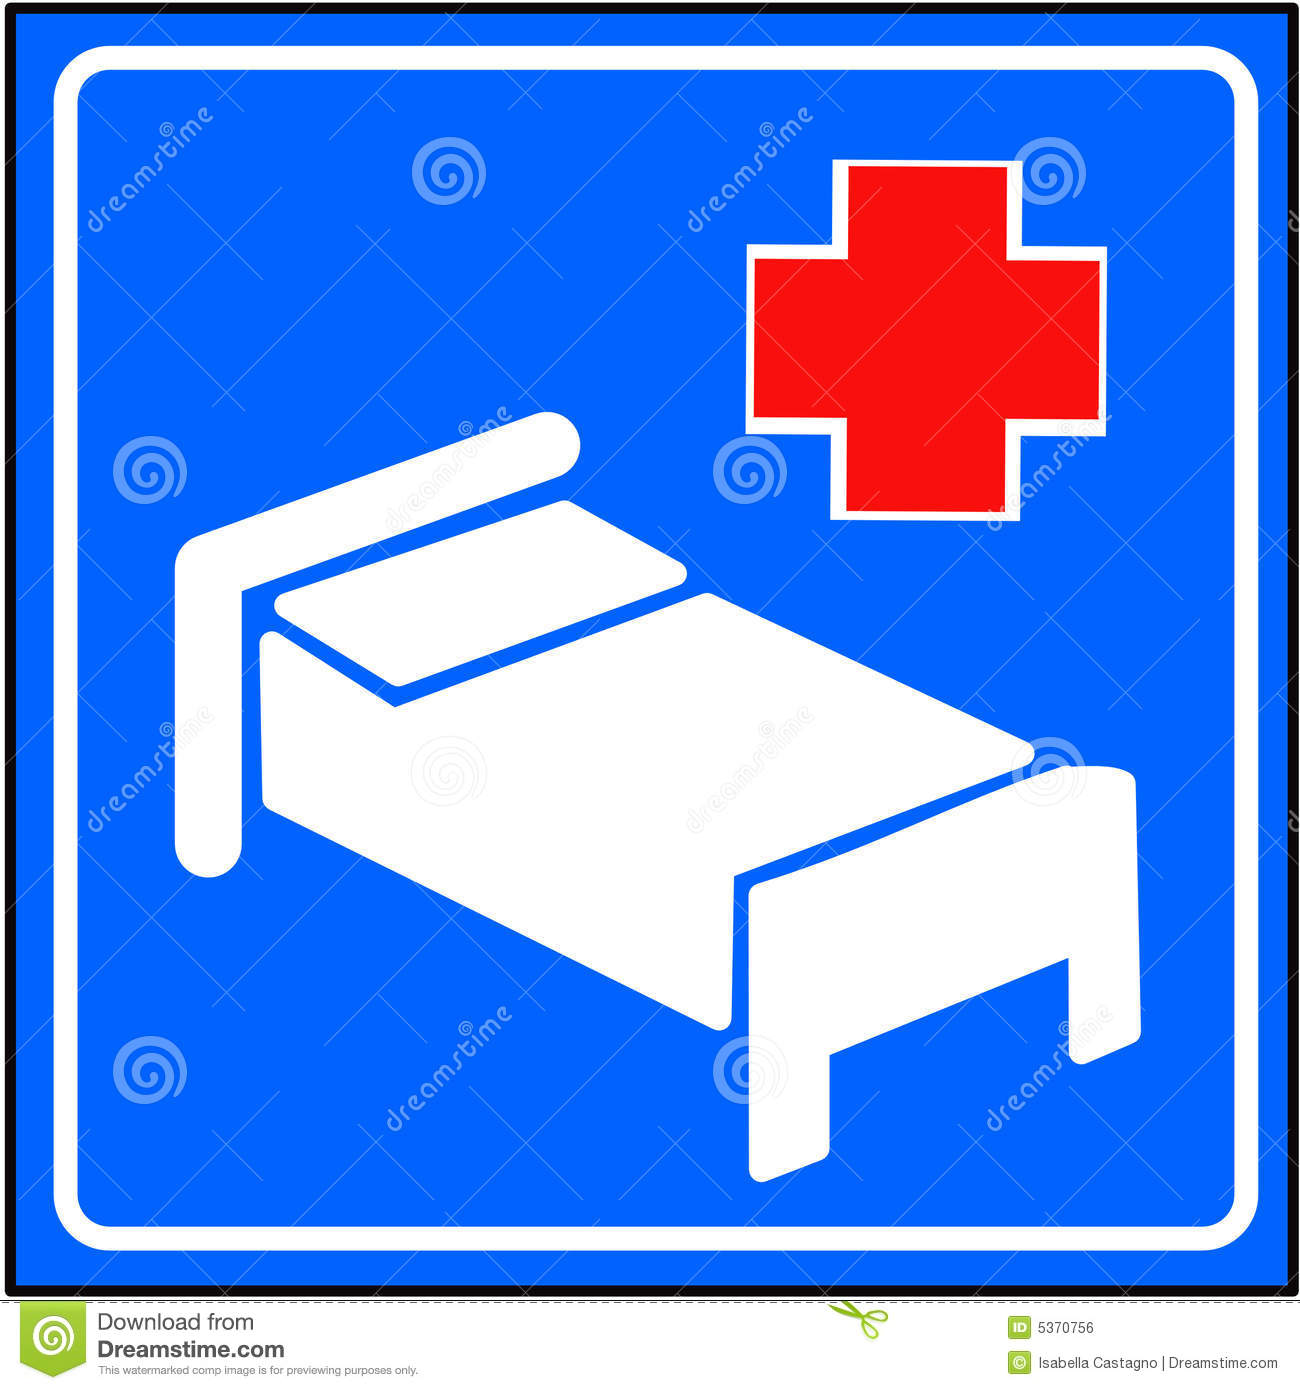 Hospital signs – All signs for hospitals - Signomatic.com